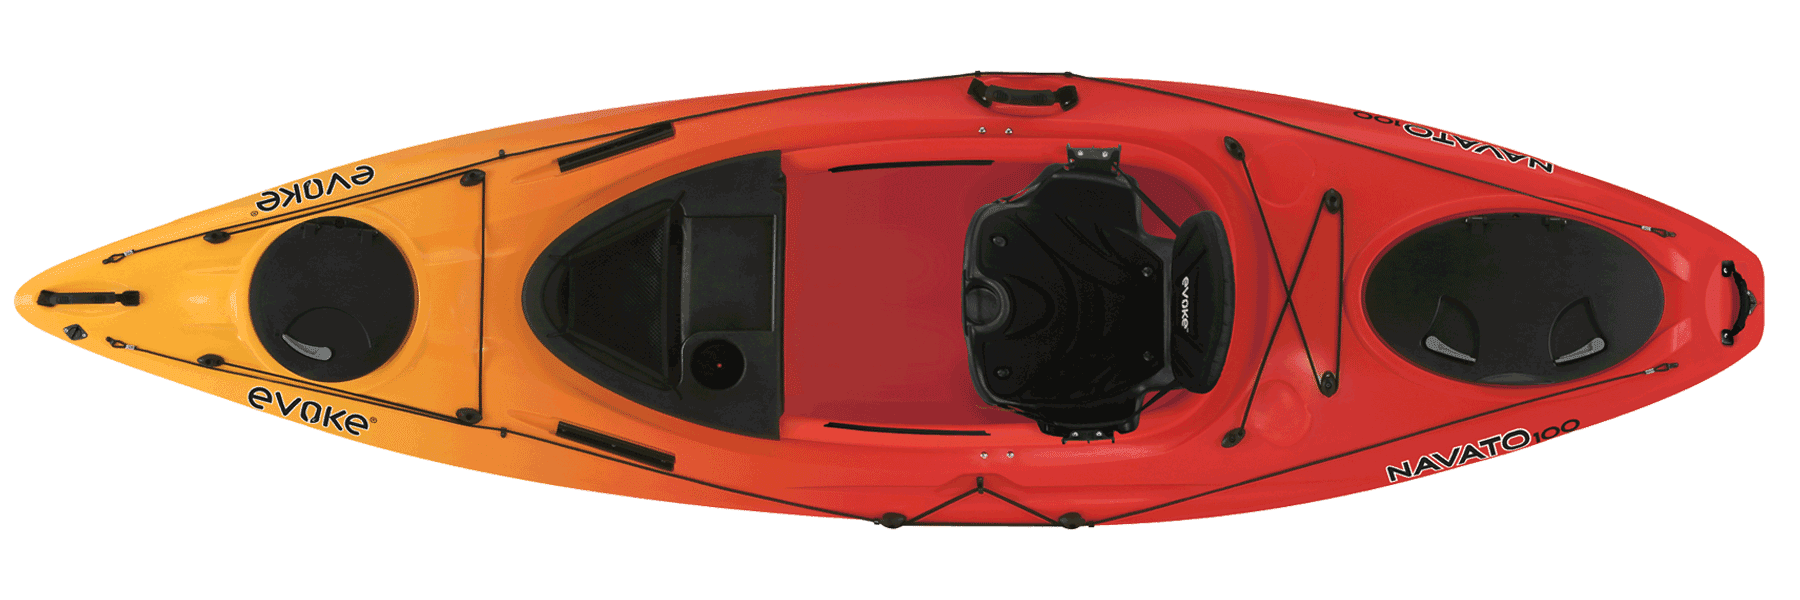 Navato 100 Sit-in recreational Kayak